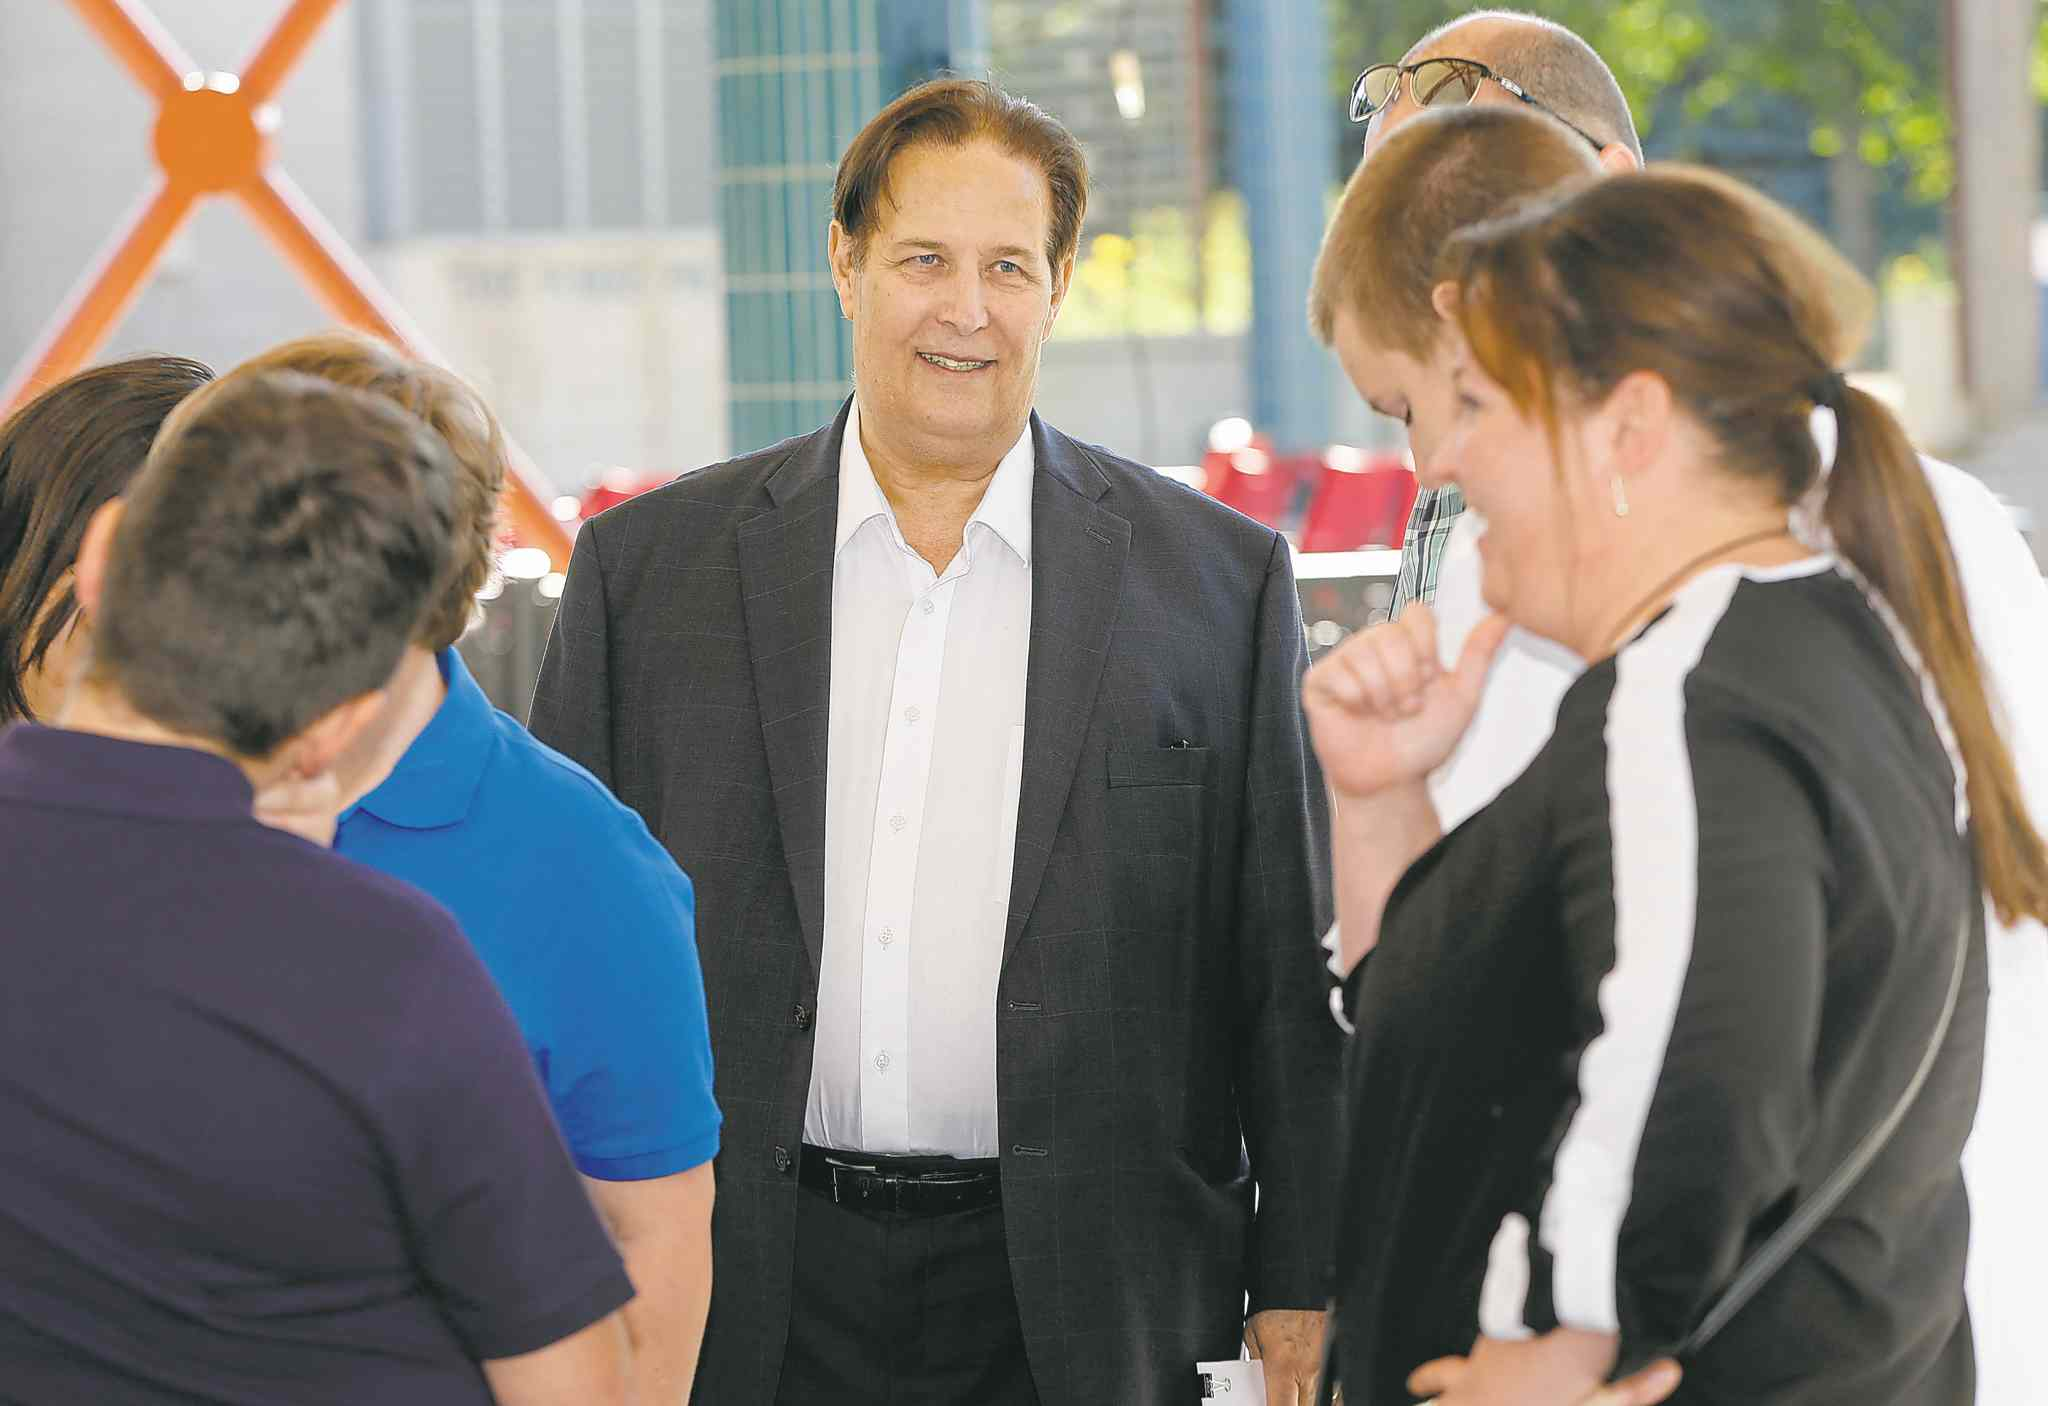 Mayor Candidate David Sanders talks to supporters after he  lays out his election platform . Aldo Santin story .SEPT  2 2014 / KEN GIGLIOTTI / WINNIPEG FREE PRESS